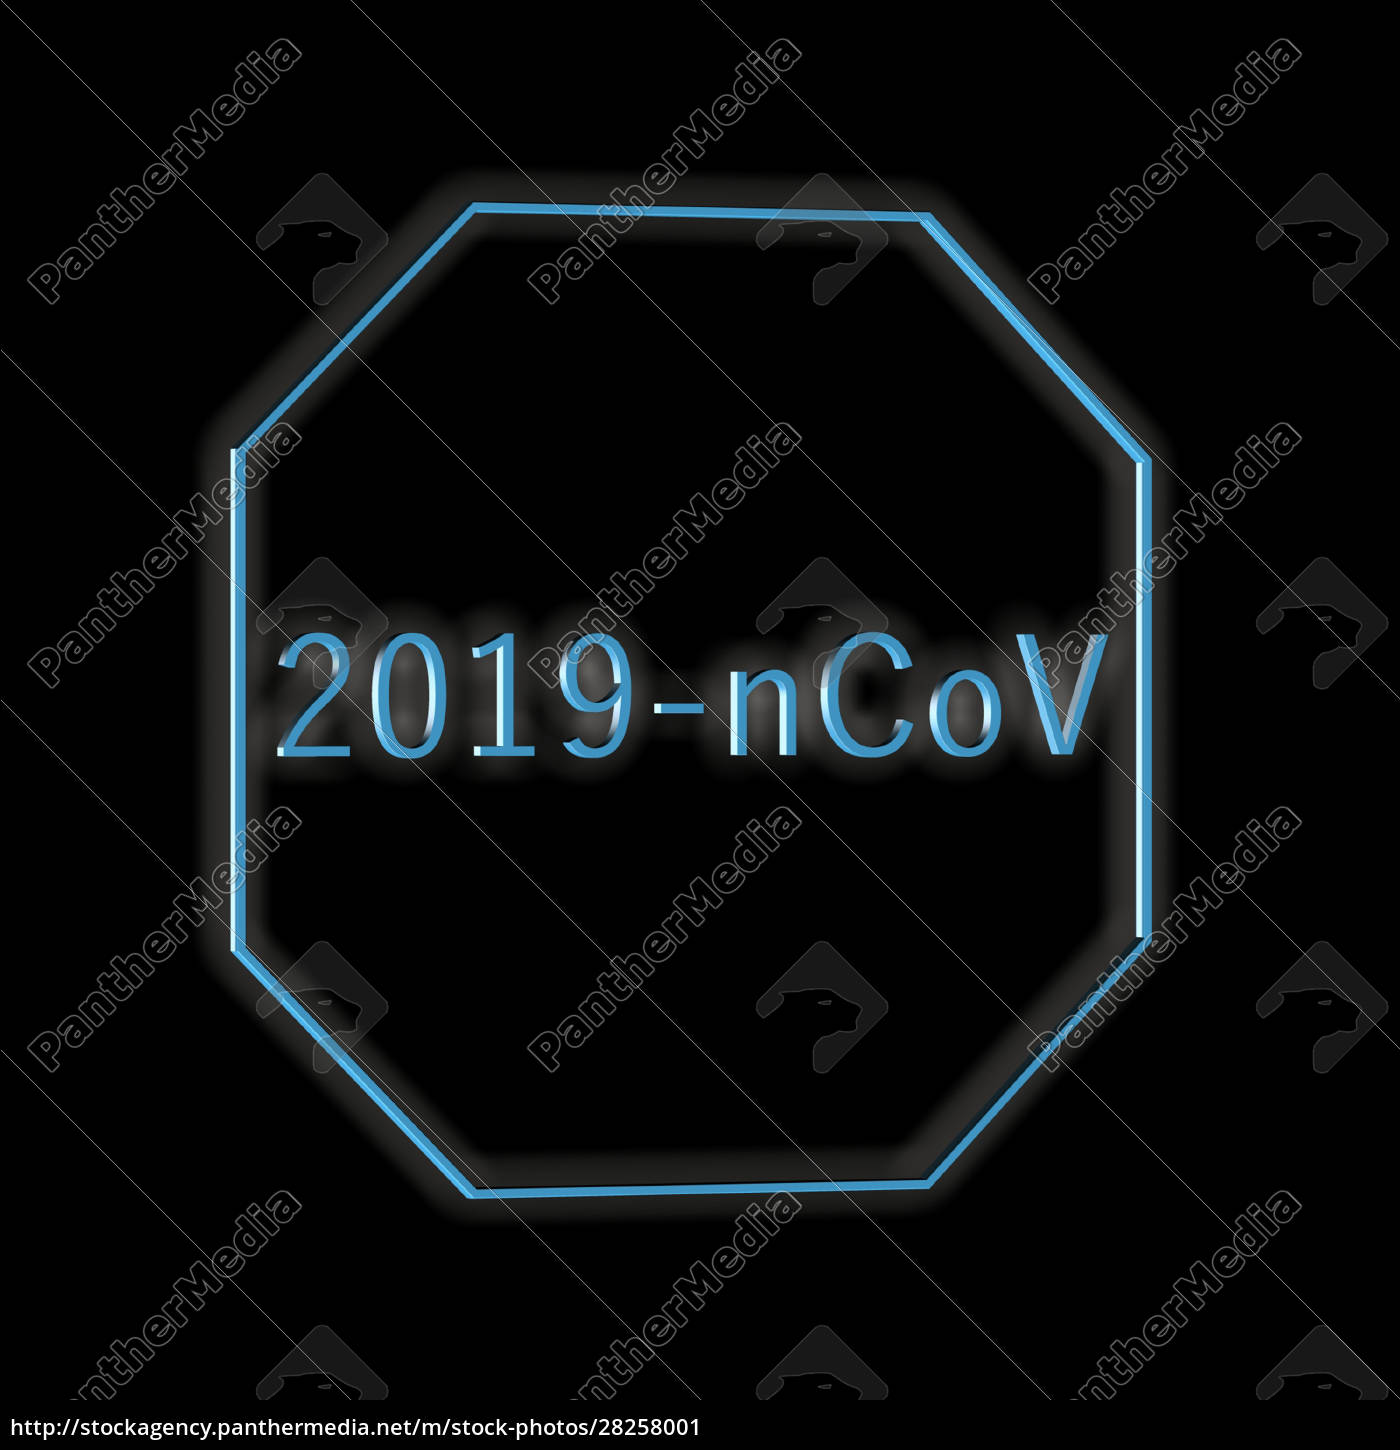 2019-ncov, -, word, or, text, as - 28258001